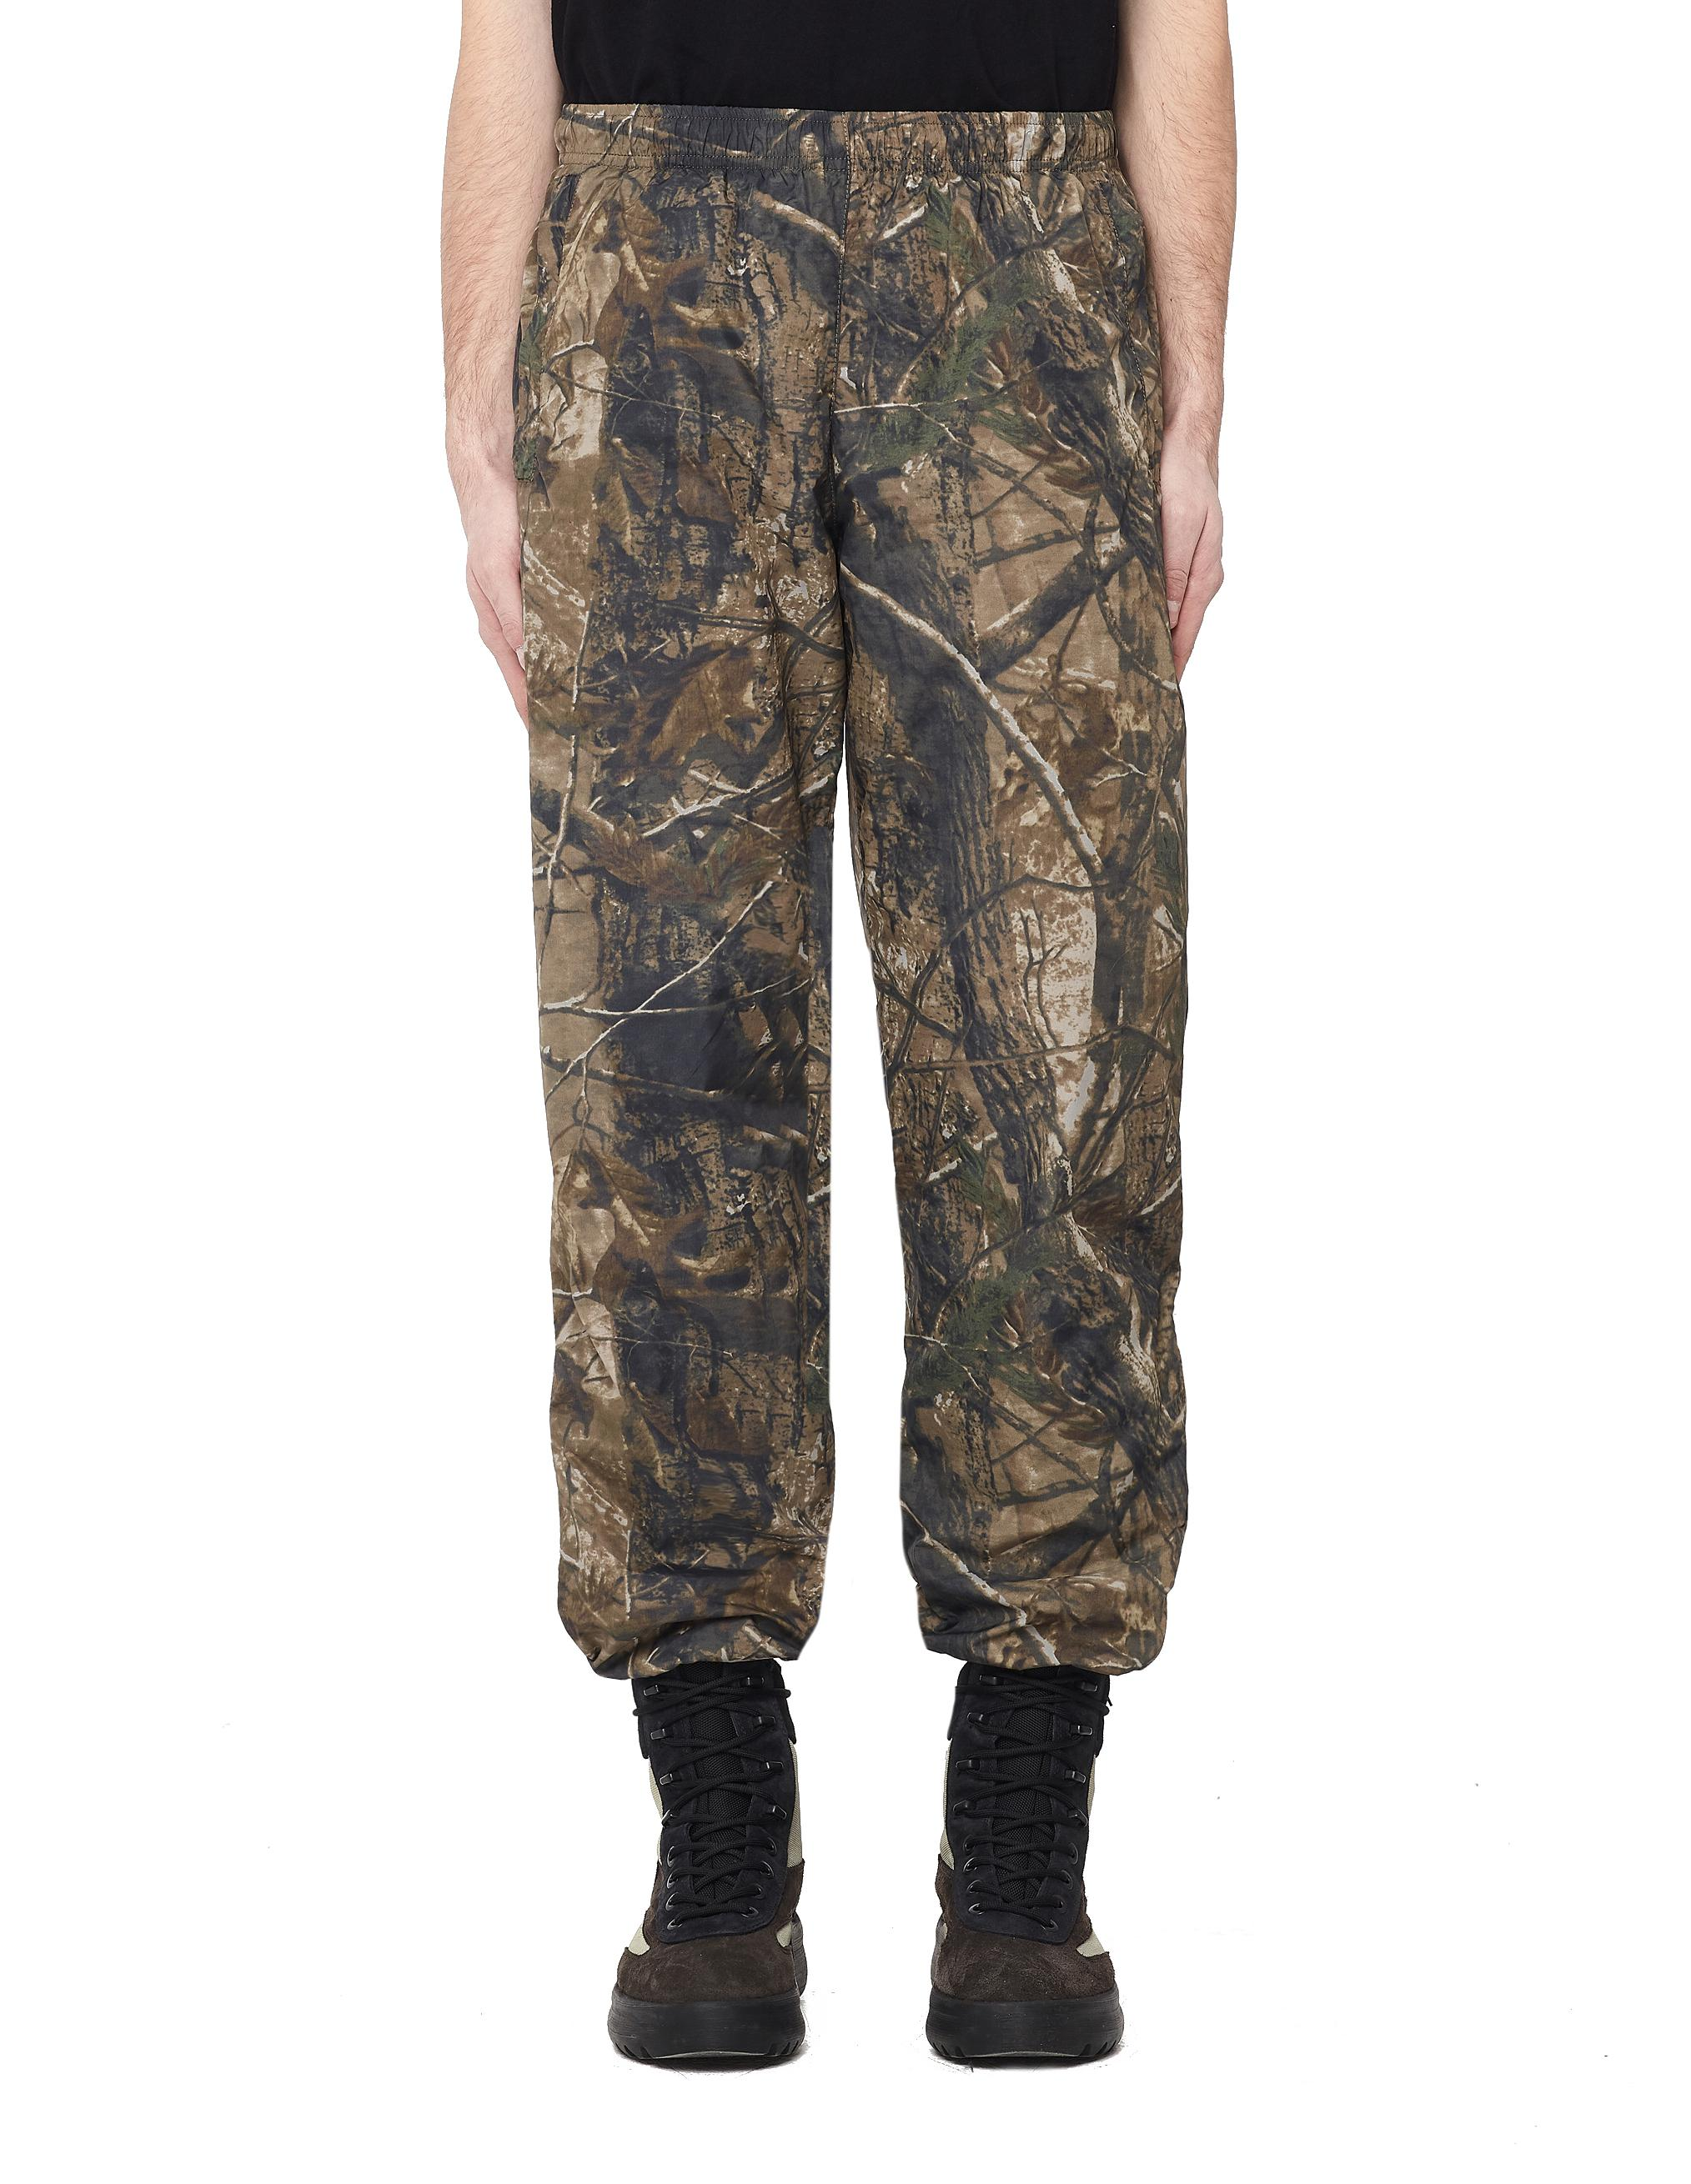 9a4a2a8bc5d3 Lyst - Yeezy Camouflage Track Pants for Men